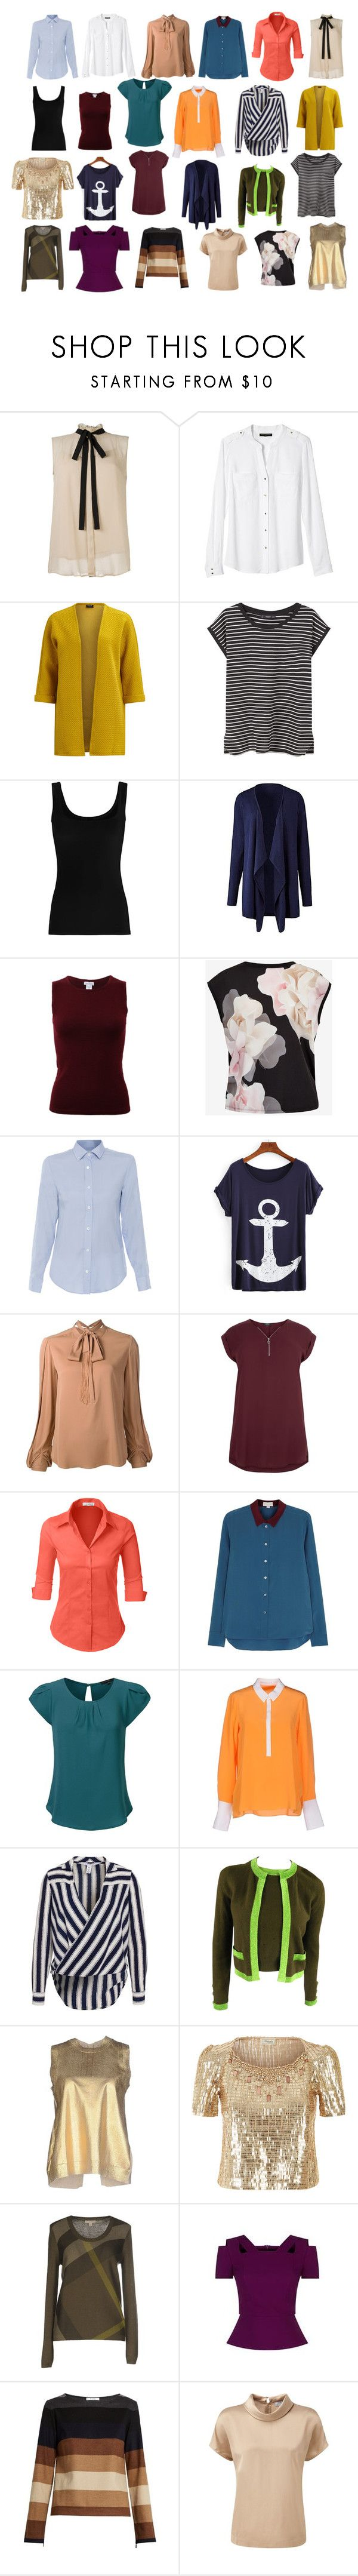 """DC tops and blouses A"" by jesmondee on Polyvore featuring Banana Republic, VILA, MANGO, Twenty, Oscar de la Renta, Ted Baker, Amina Rubinacci, Kobi Halperin, New Look and LE3NO"